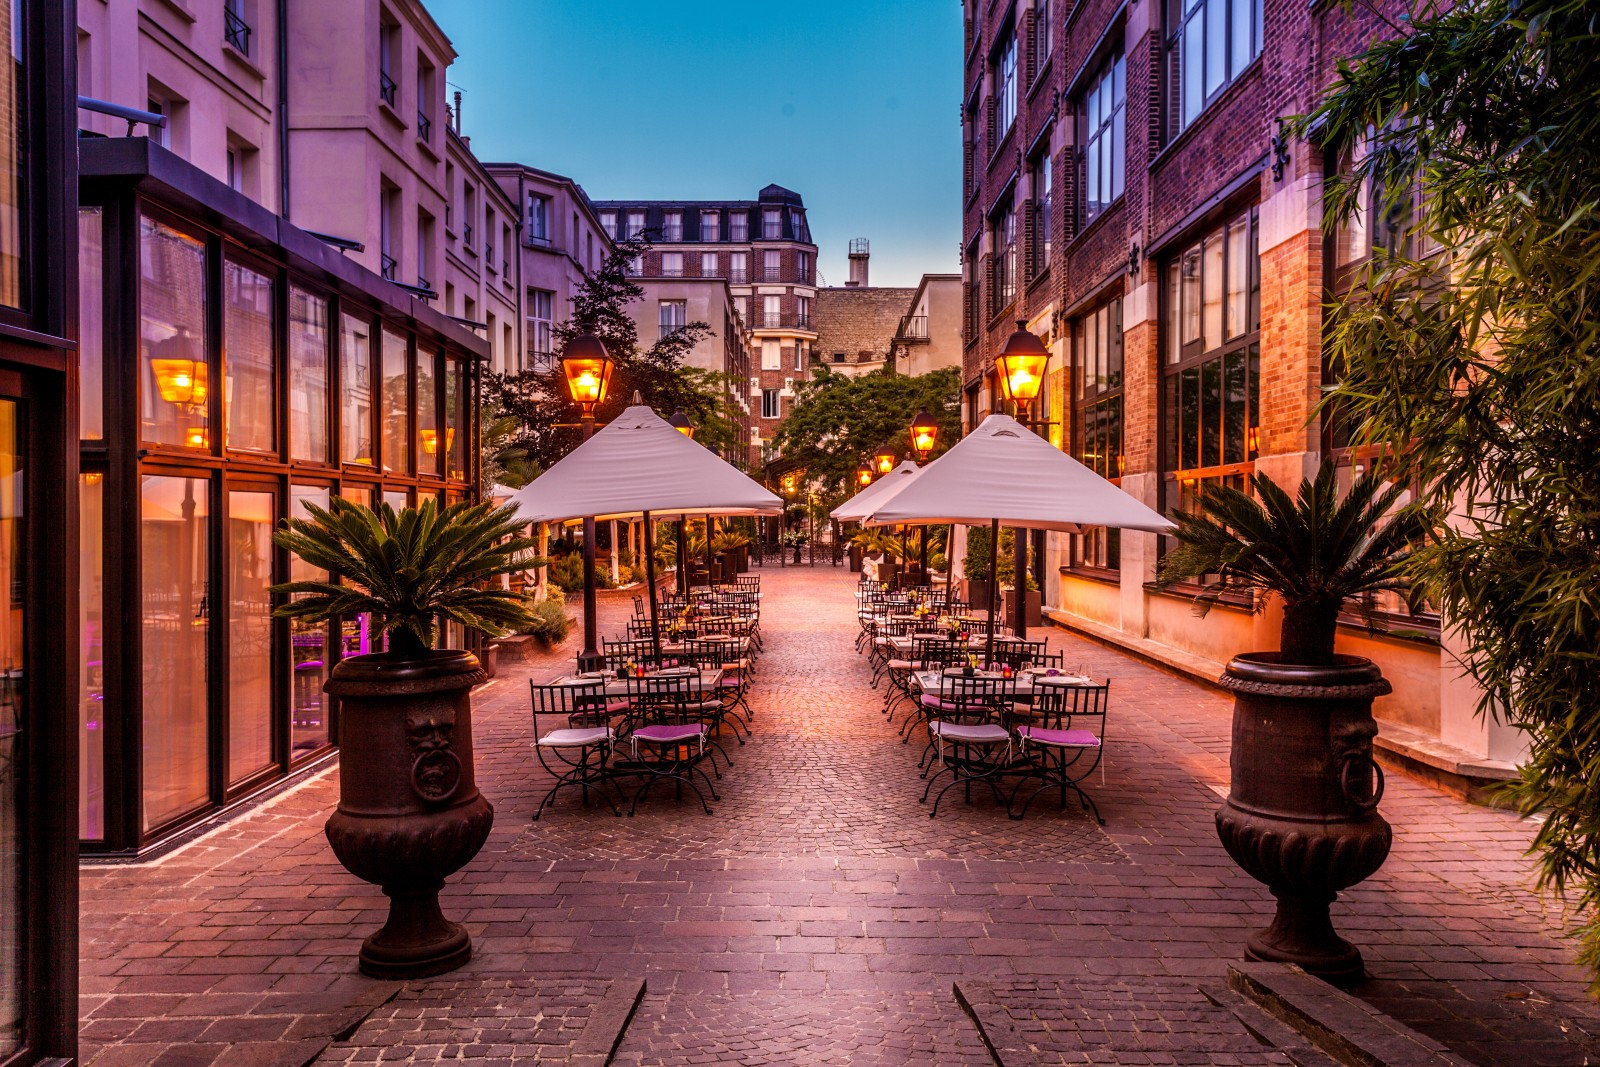 The gate collection 4 star boutique residence paris les jardins du marais - Jardins du marais restaurant ...